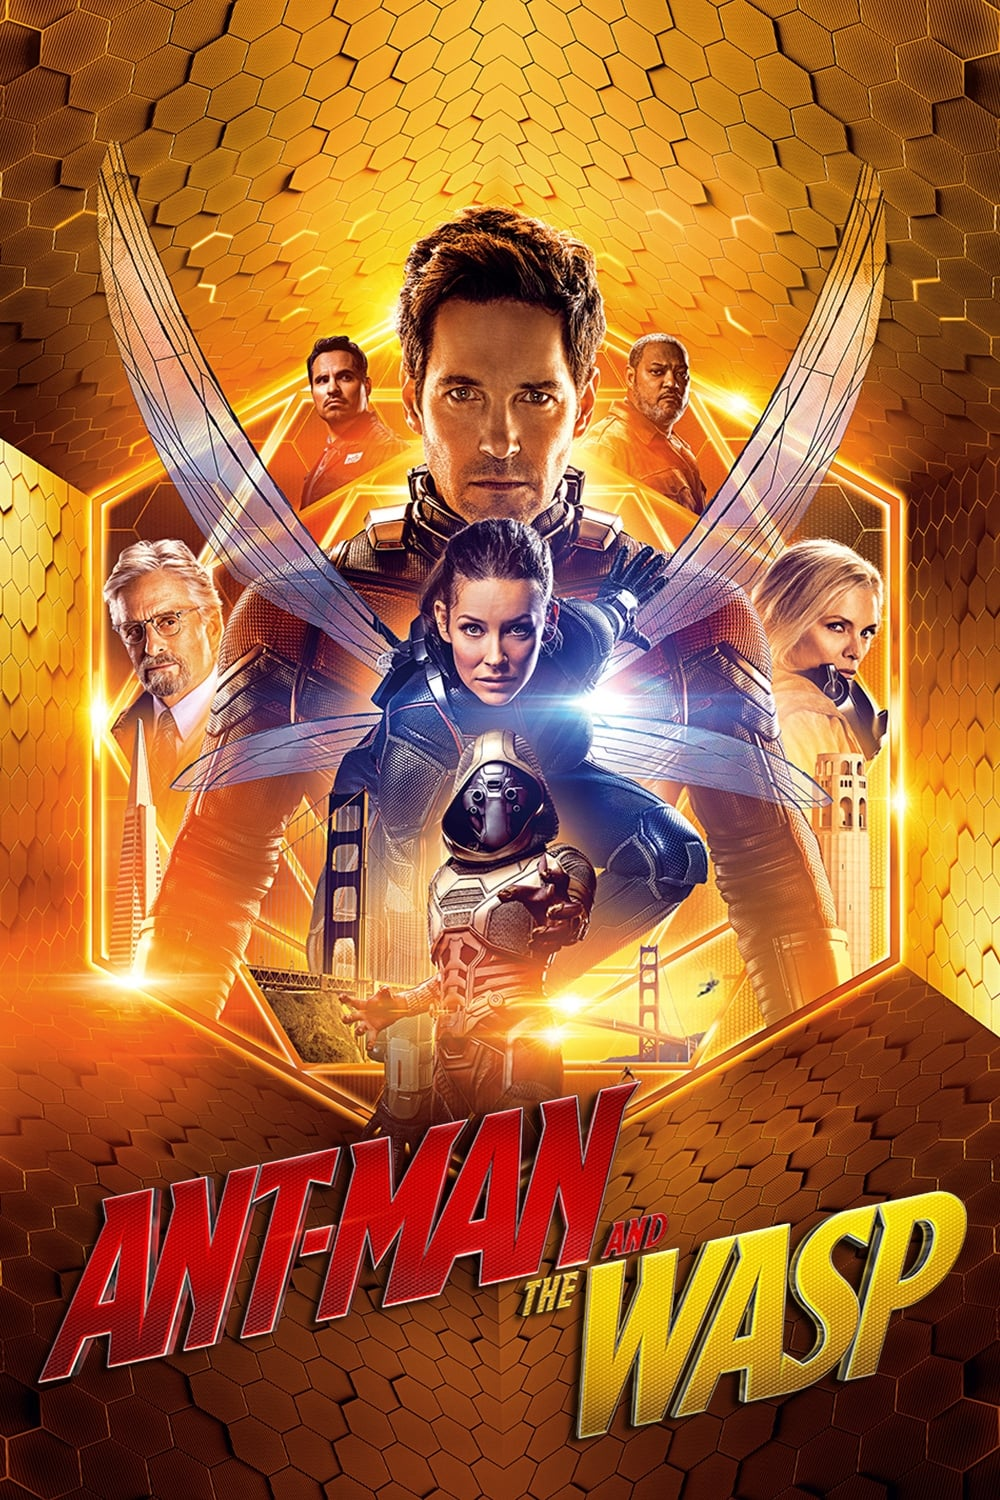 Ant-Man and the Wasp (2018) [Hindi 5.1+English 5.1] | x265 10Bit BluRay | 1080p | 720p | 480p | Download | Watch Online | GDrive | Direct Links